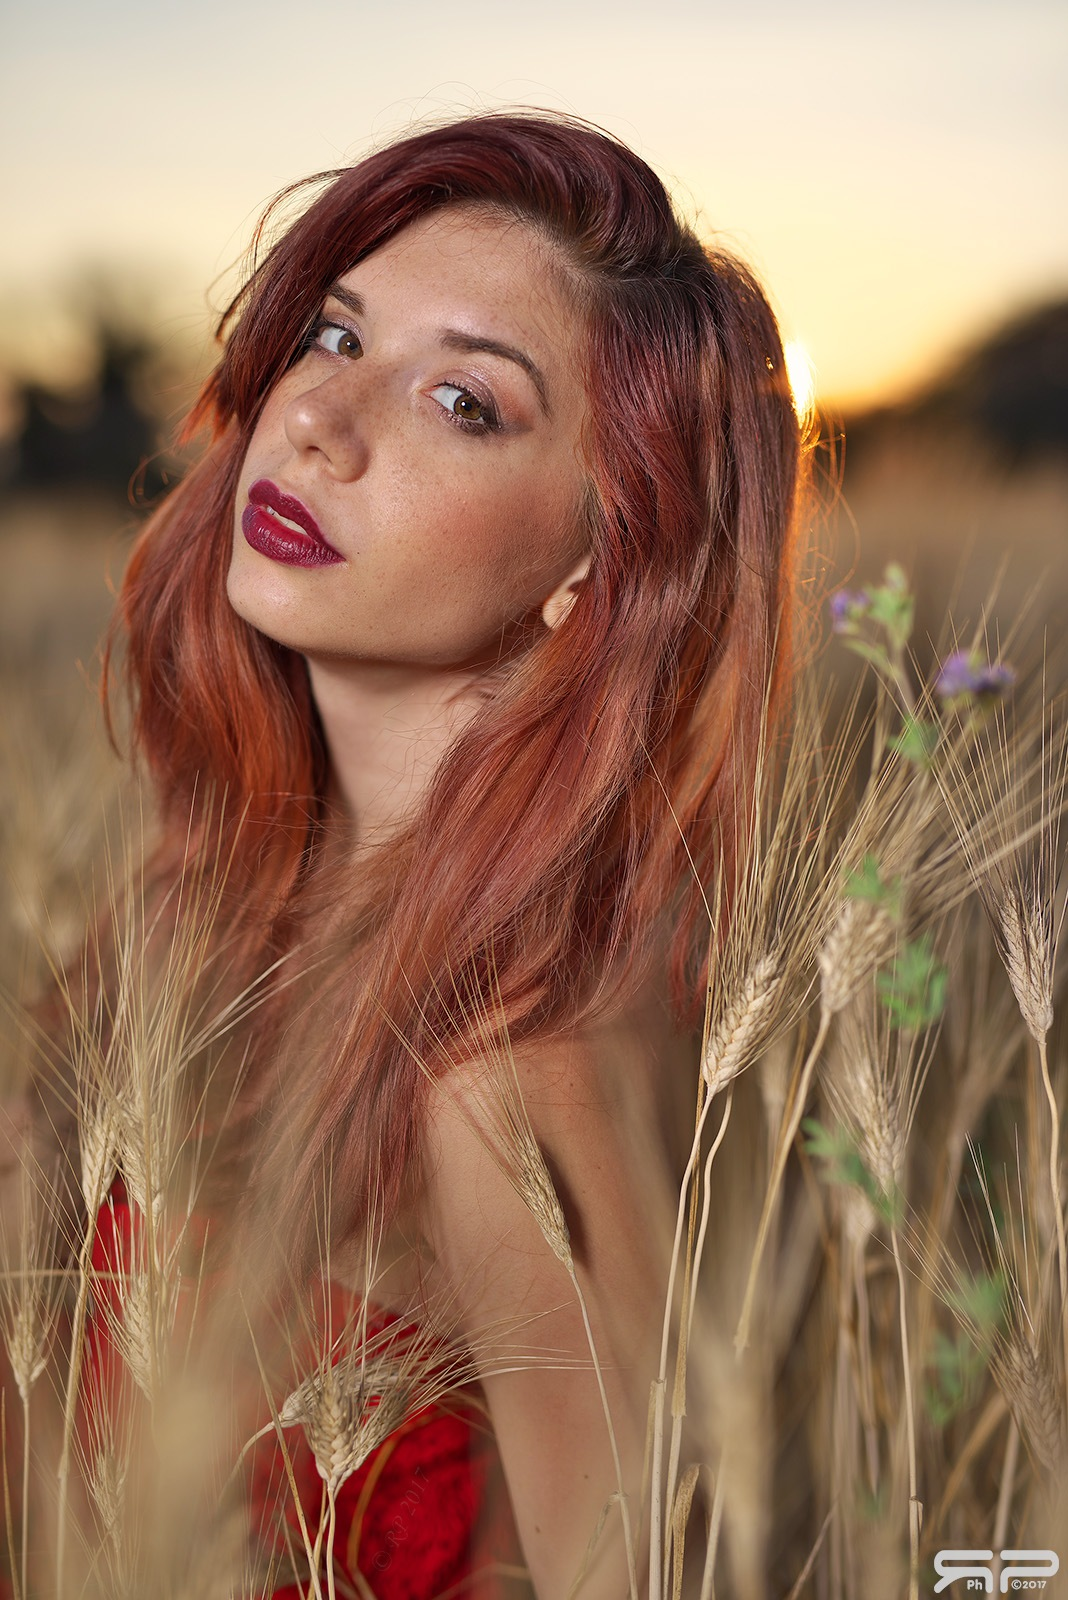 Portrait of Antonella at sunset by Roberto Perrella photography